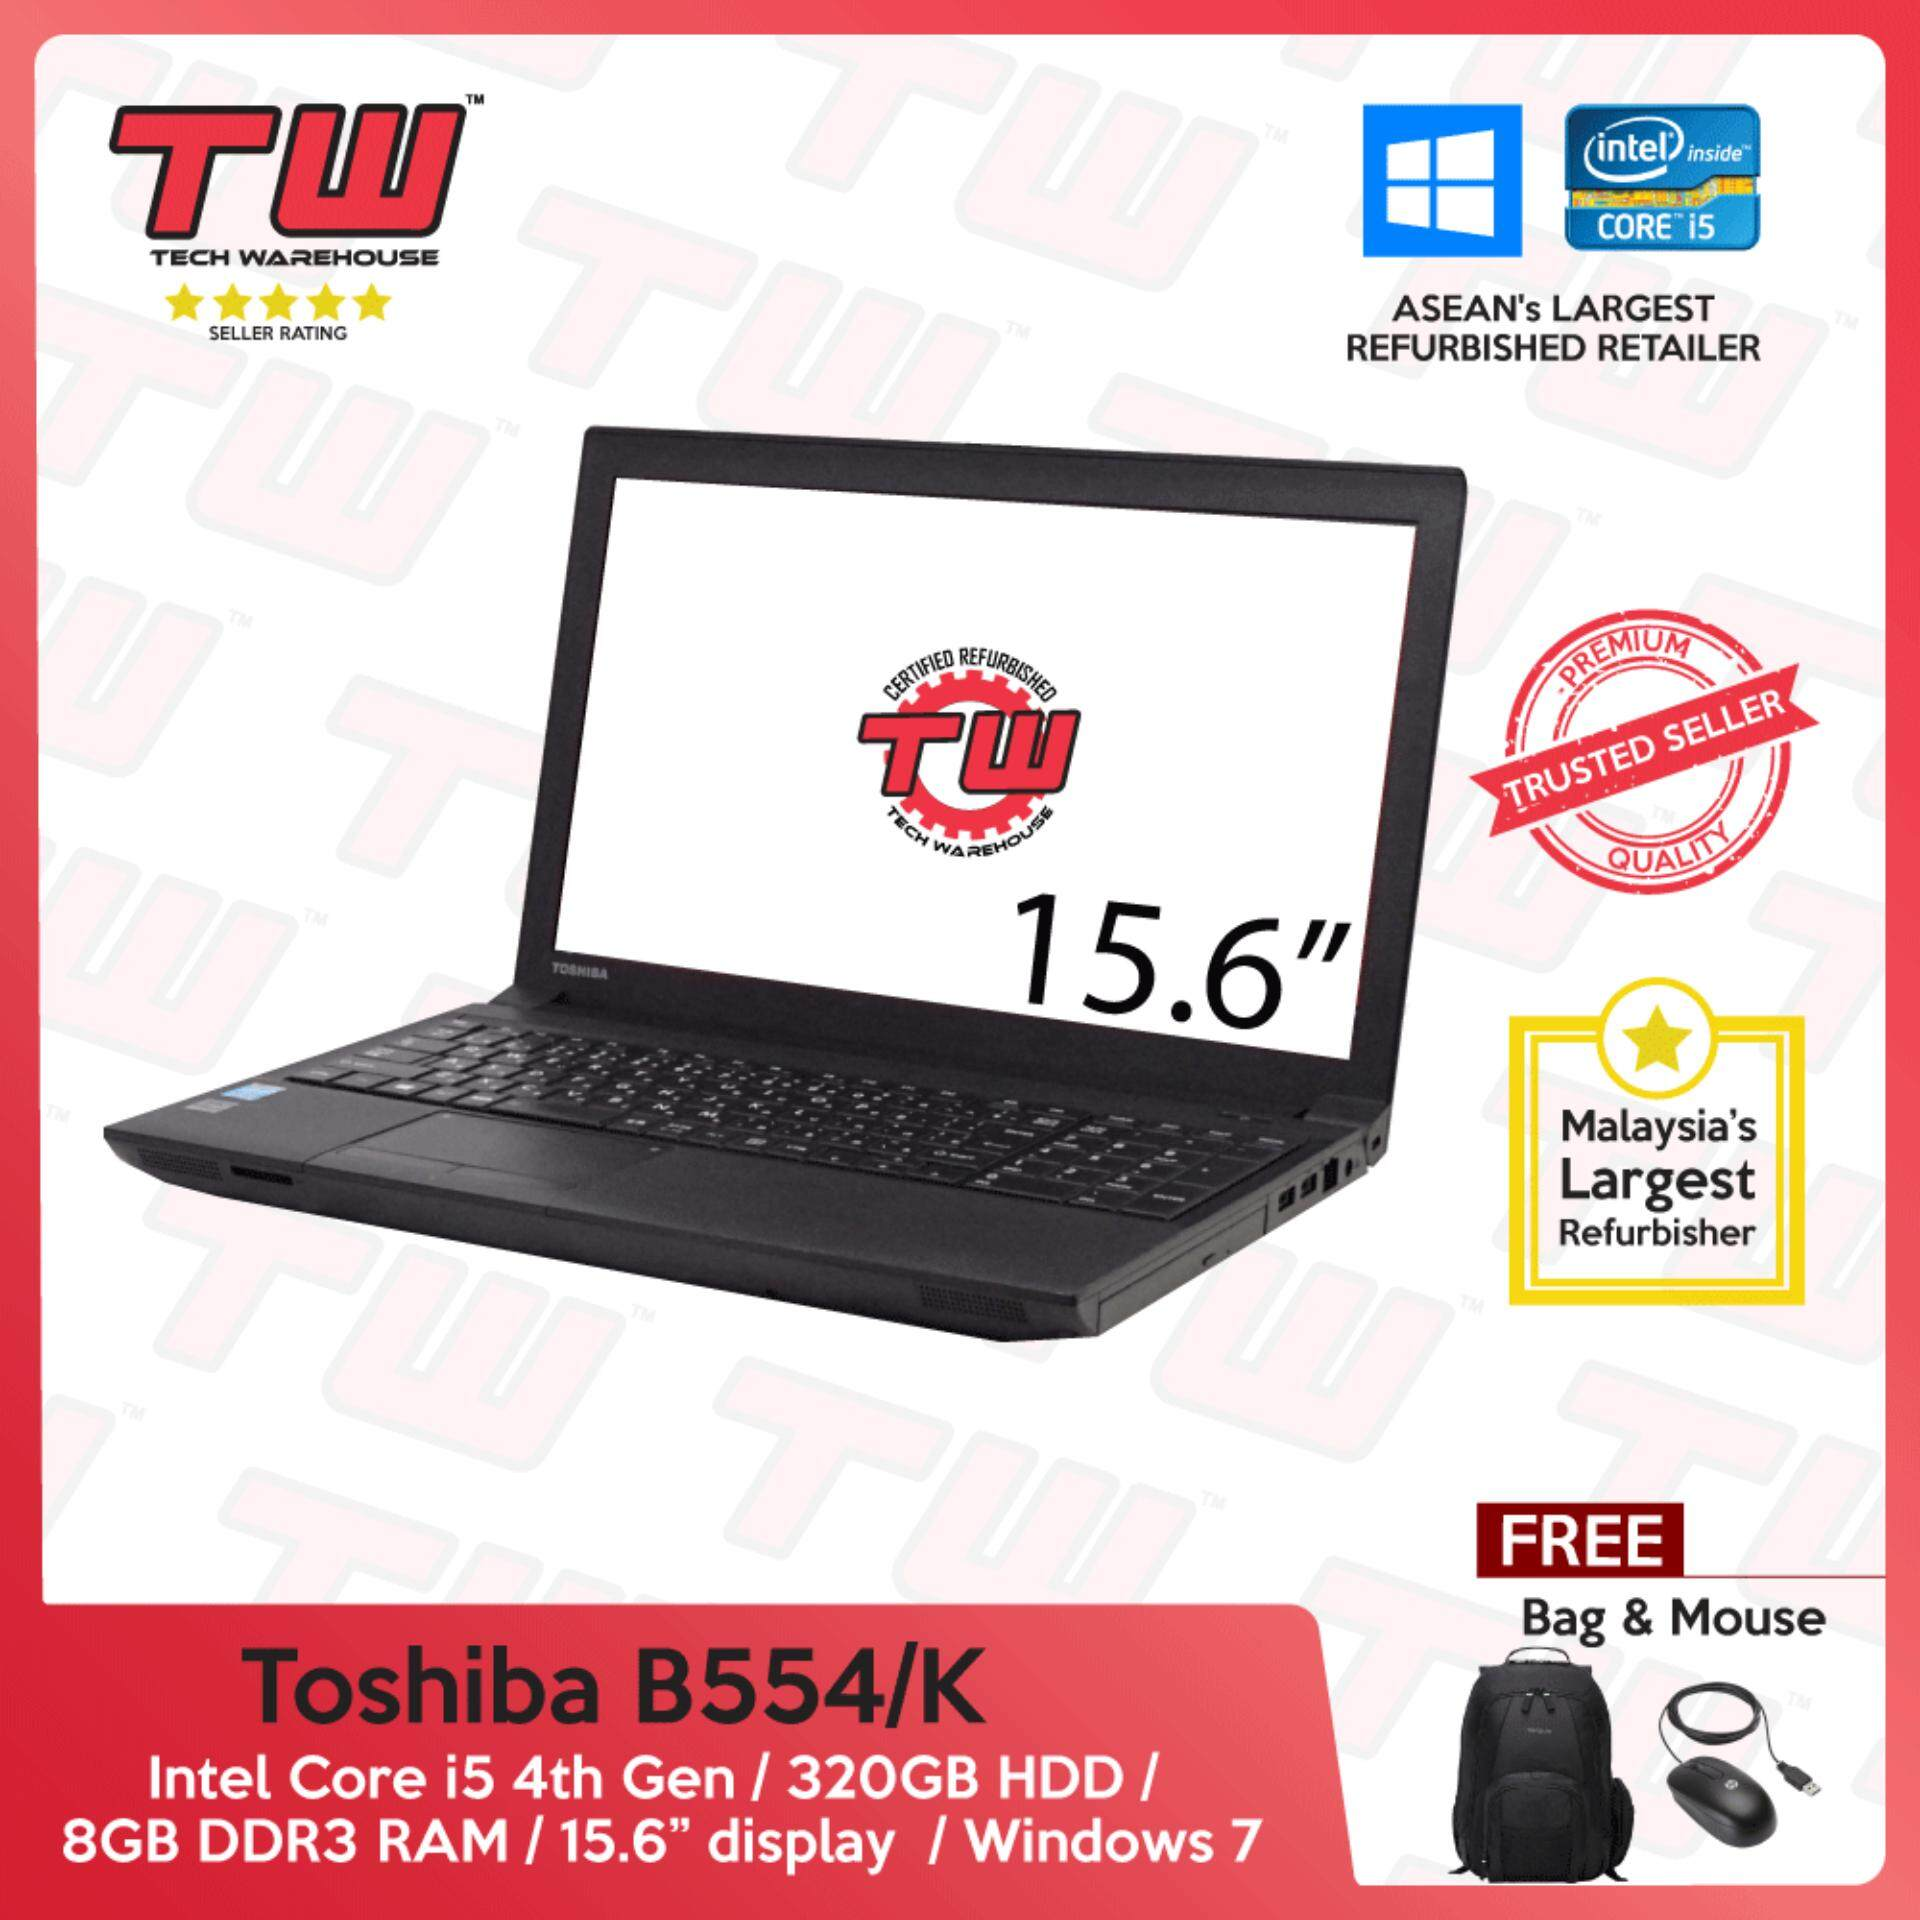 Toshiba Notebook B554/K Core i5 4th Gen 2.50GHz / 8GB RAM / 320GB HDD / Windows 7 Laptop / 3 Month Warranty (Factory Refurbished) Malaysia